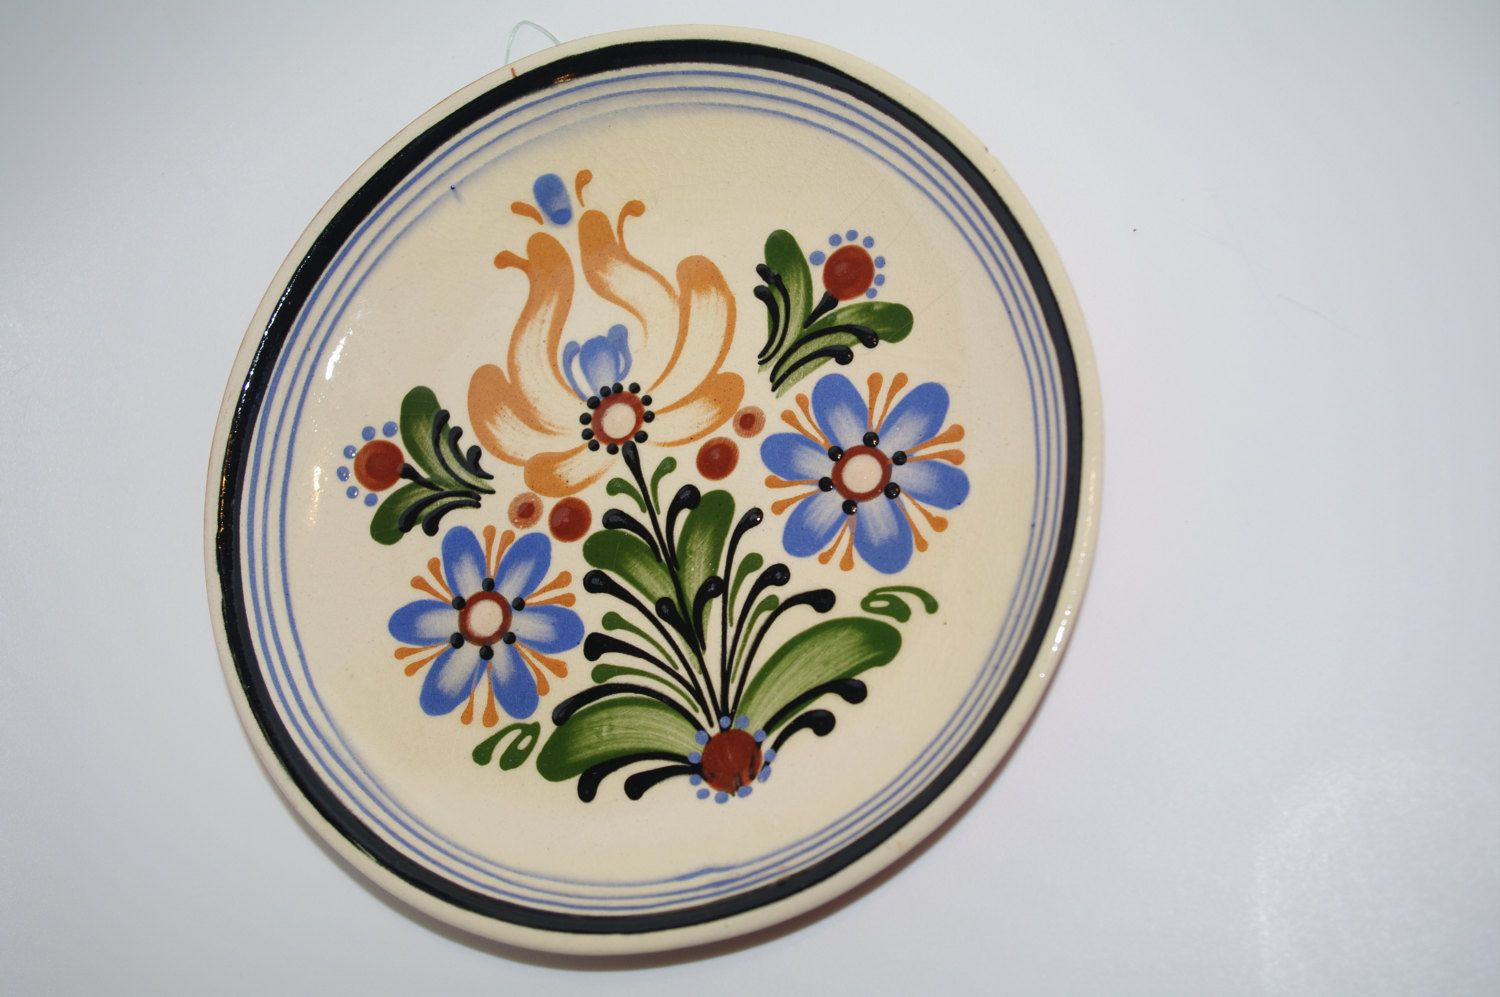 Ukrainian ceramic Wall Plate Ukrainian pottery Floral Plate Decorative plate Hand Painted Antique wall dish Folk Flowers Bohemian pottery 70 by VintagePolkaShop on Etsy